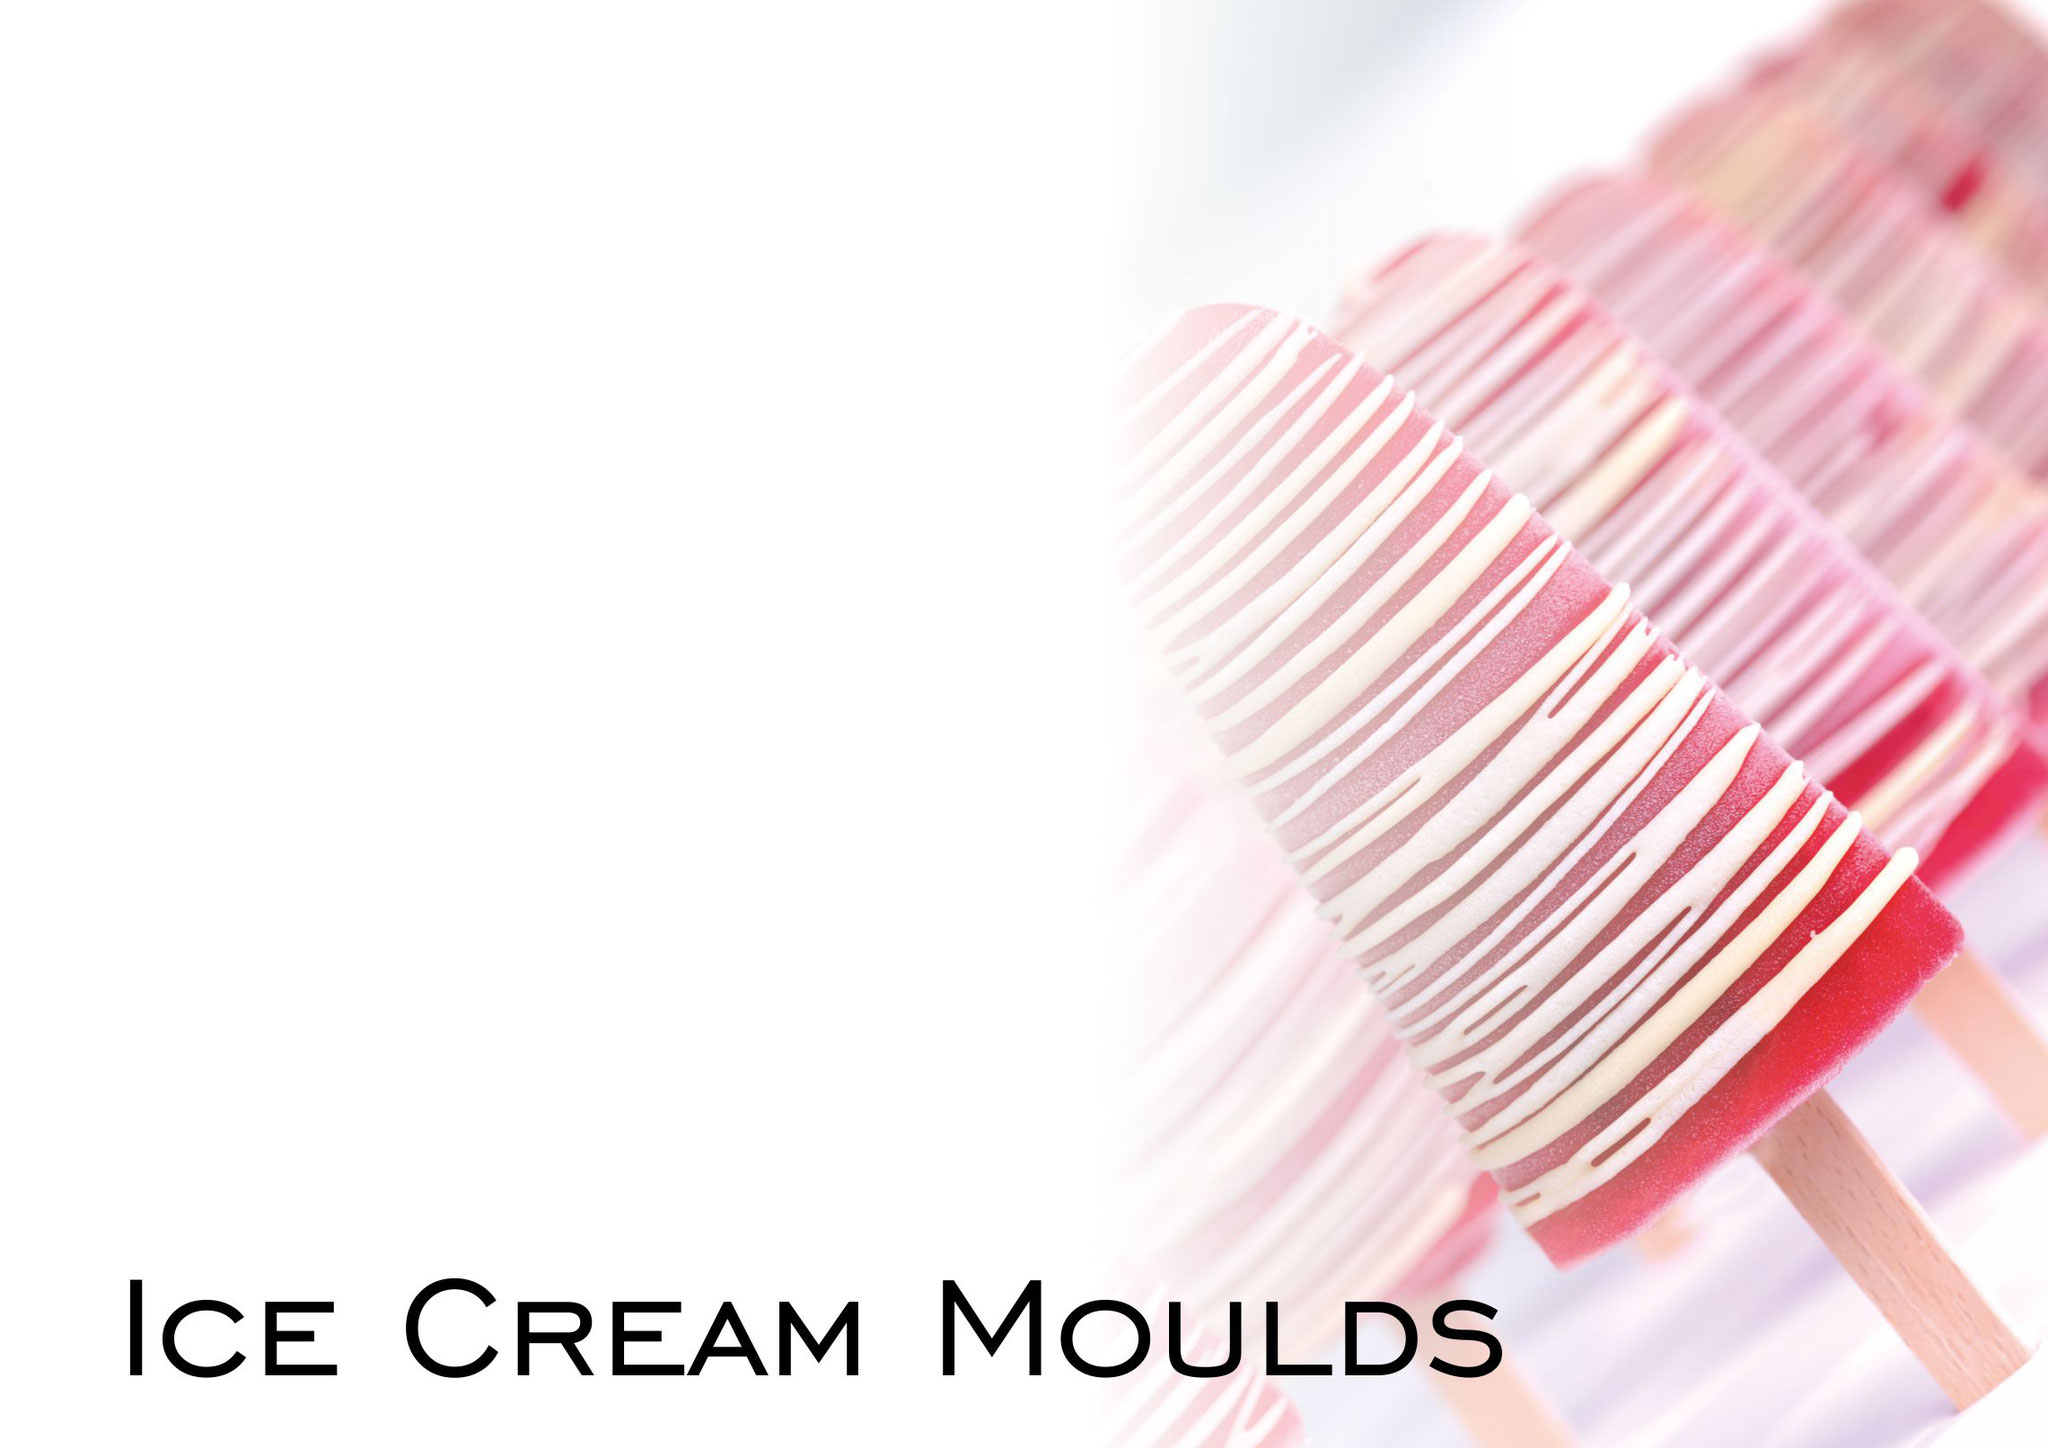 Ice Cream Moulds